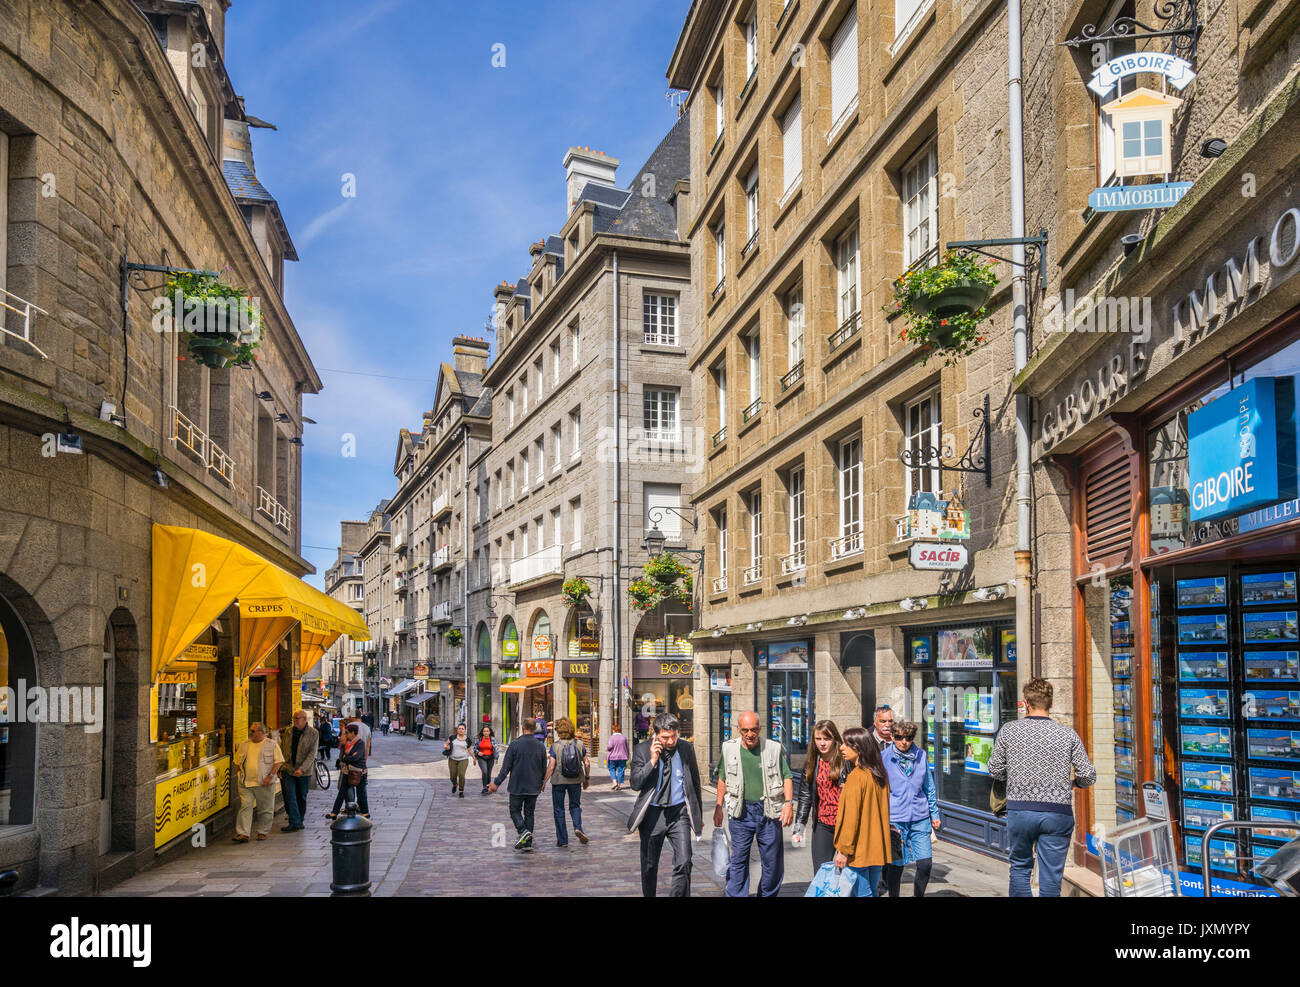 France, Brittany, Saint-Malo, Intra Muros, view of Rue Porcon de la Stock  Photo - Alamy